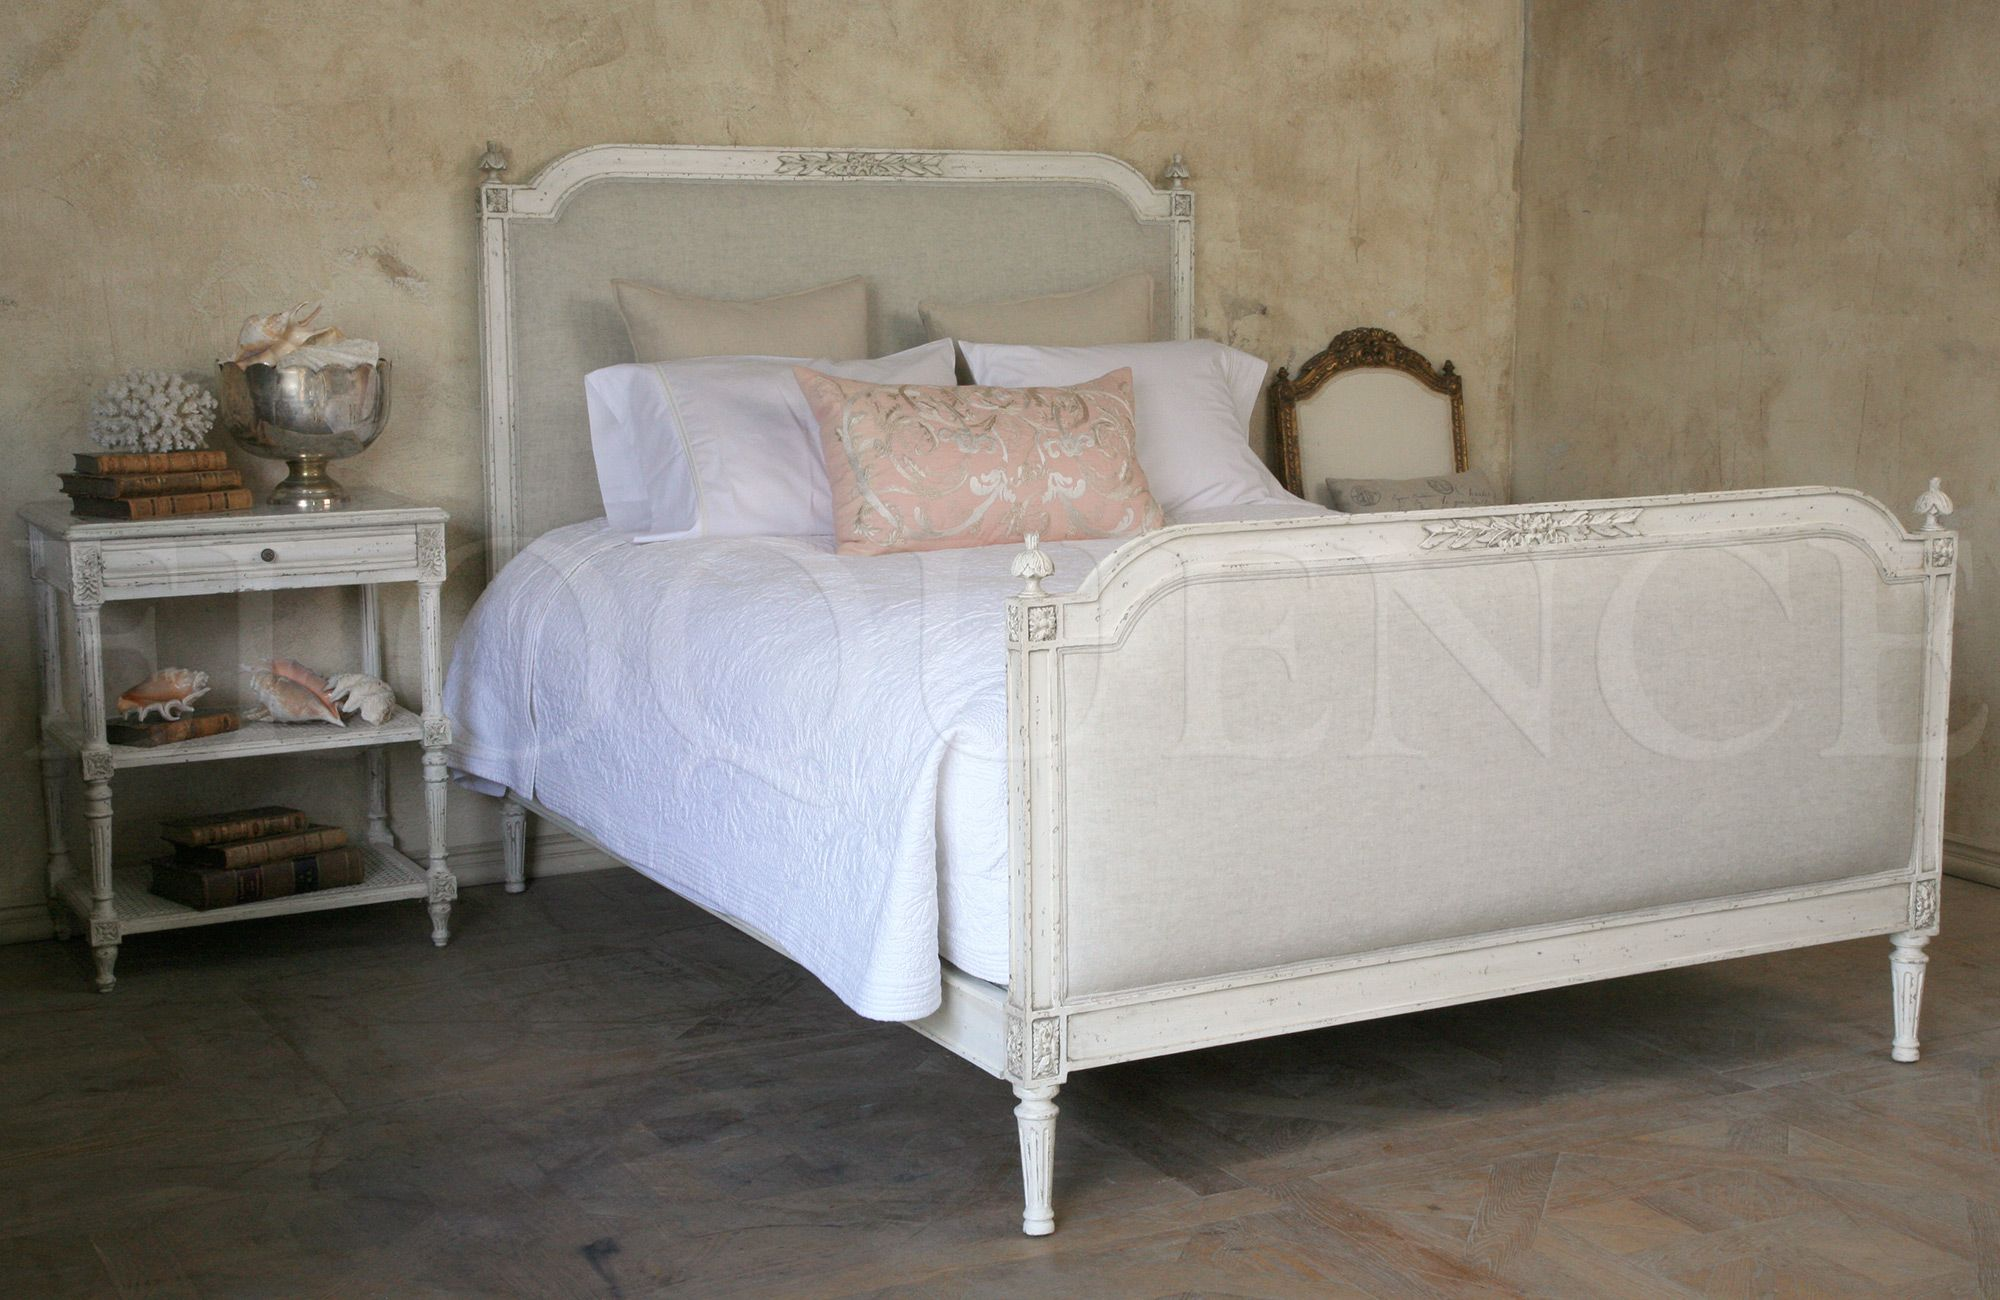 Blanka Bed Available In King 3 360 Queen 2 940 And Twin 1 365 Sizes Shown In Antique White Finish And Fog Linen